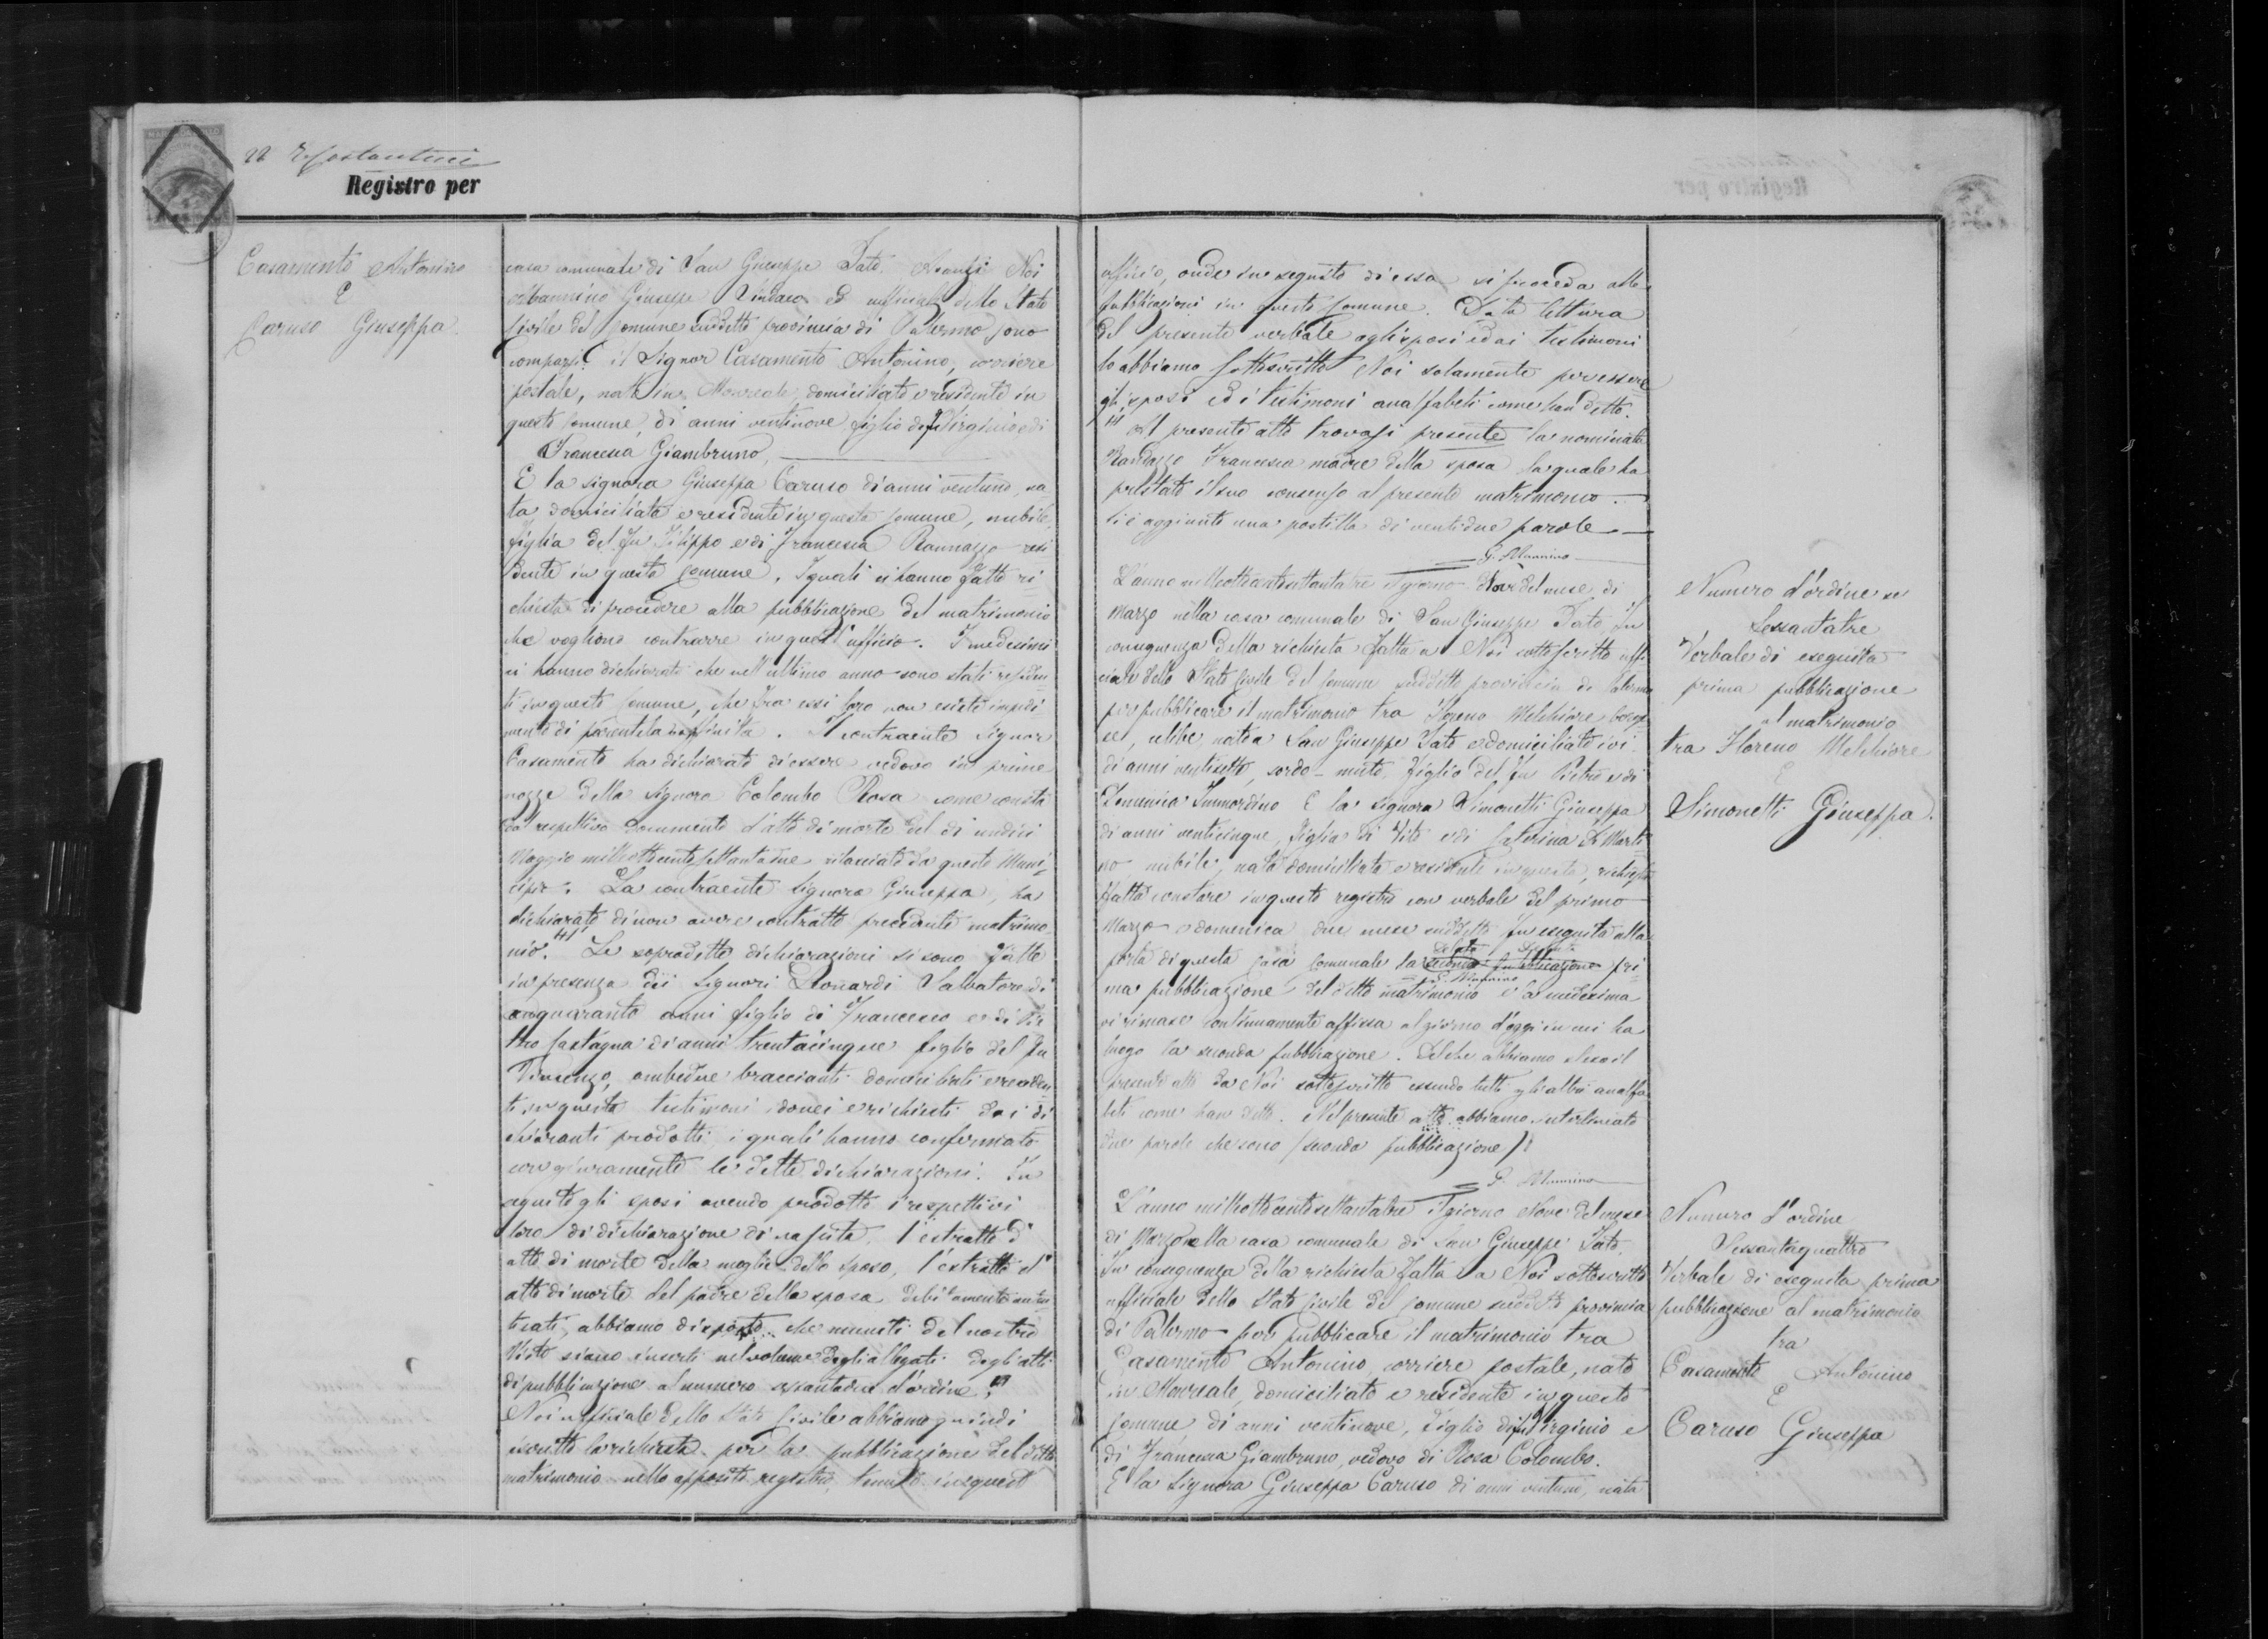 Melchiorre and rosa simonetta marriage record.jpg